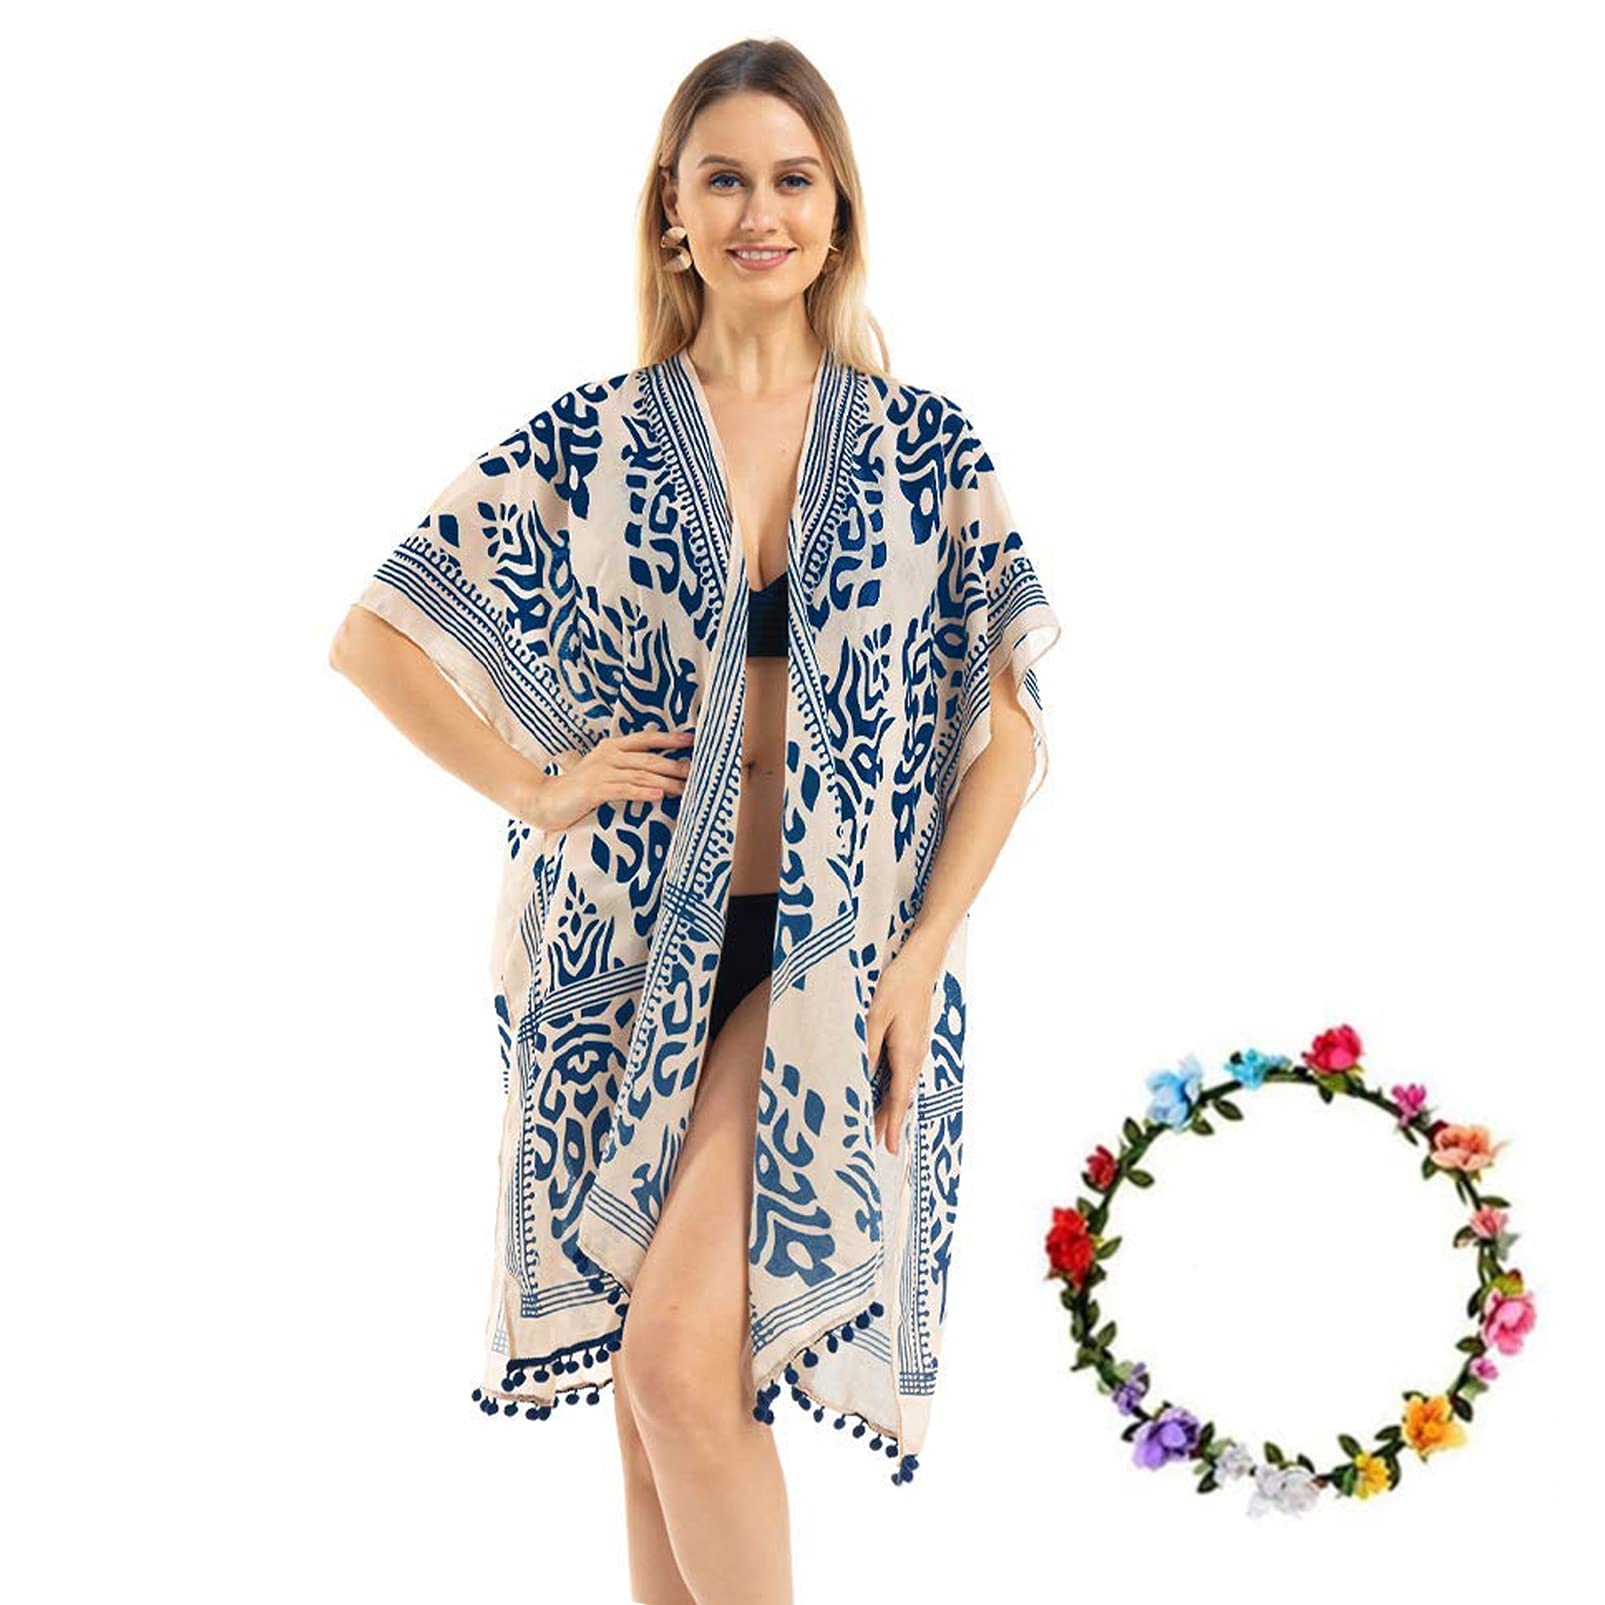 Womens Fashion Floral Print Swimsuit Casual Cardigan Loose Beach skirt Cover Up.